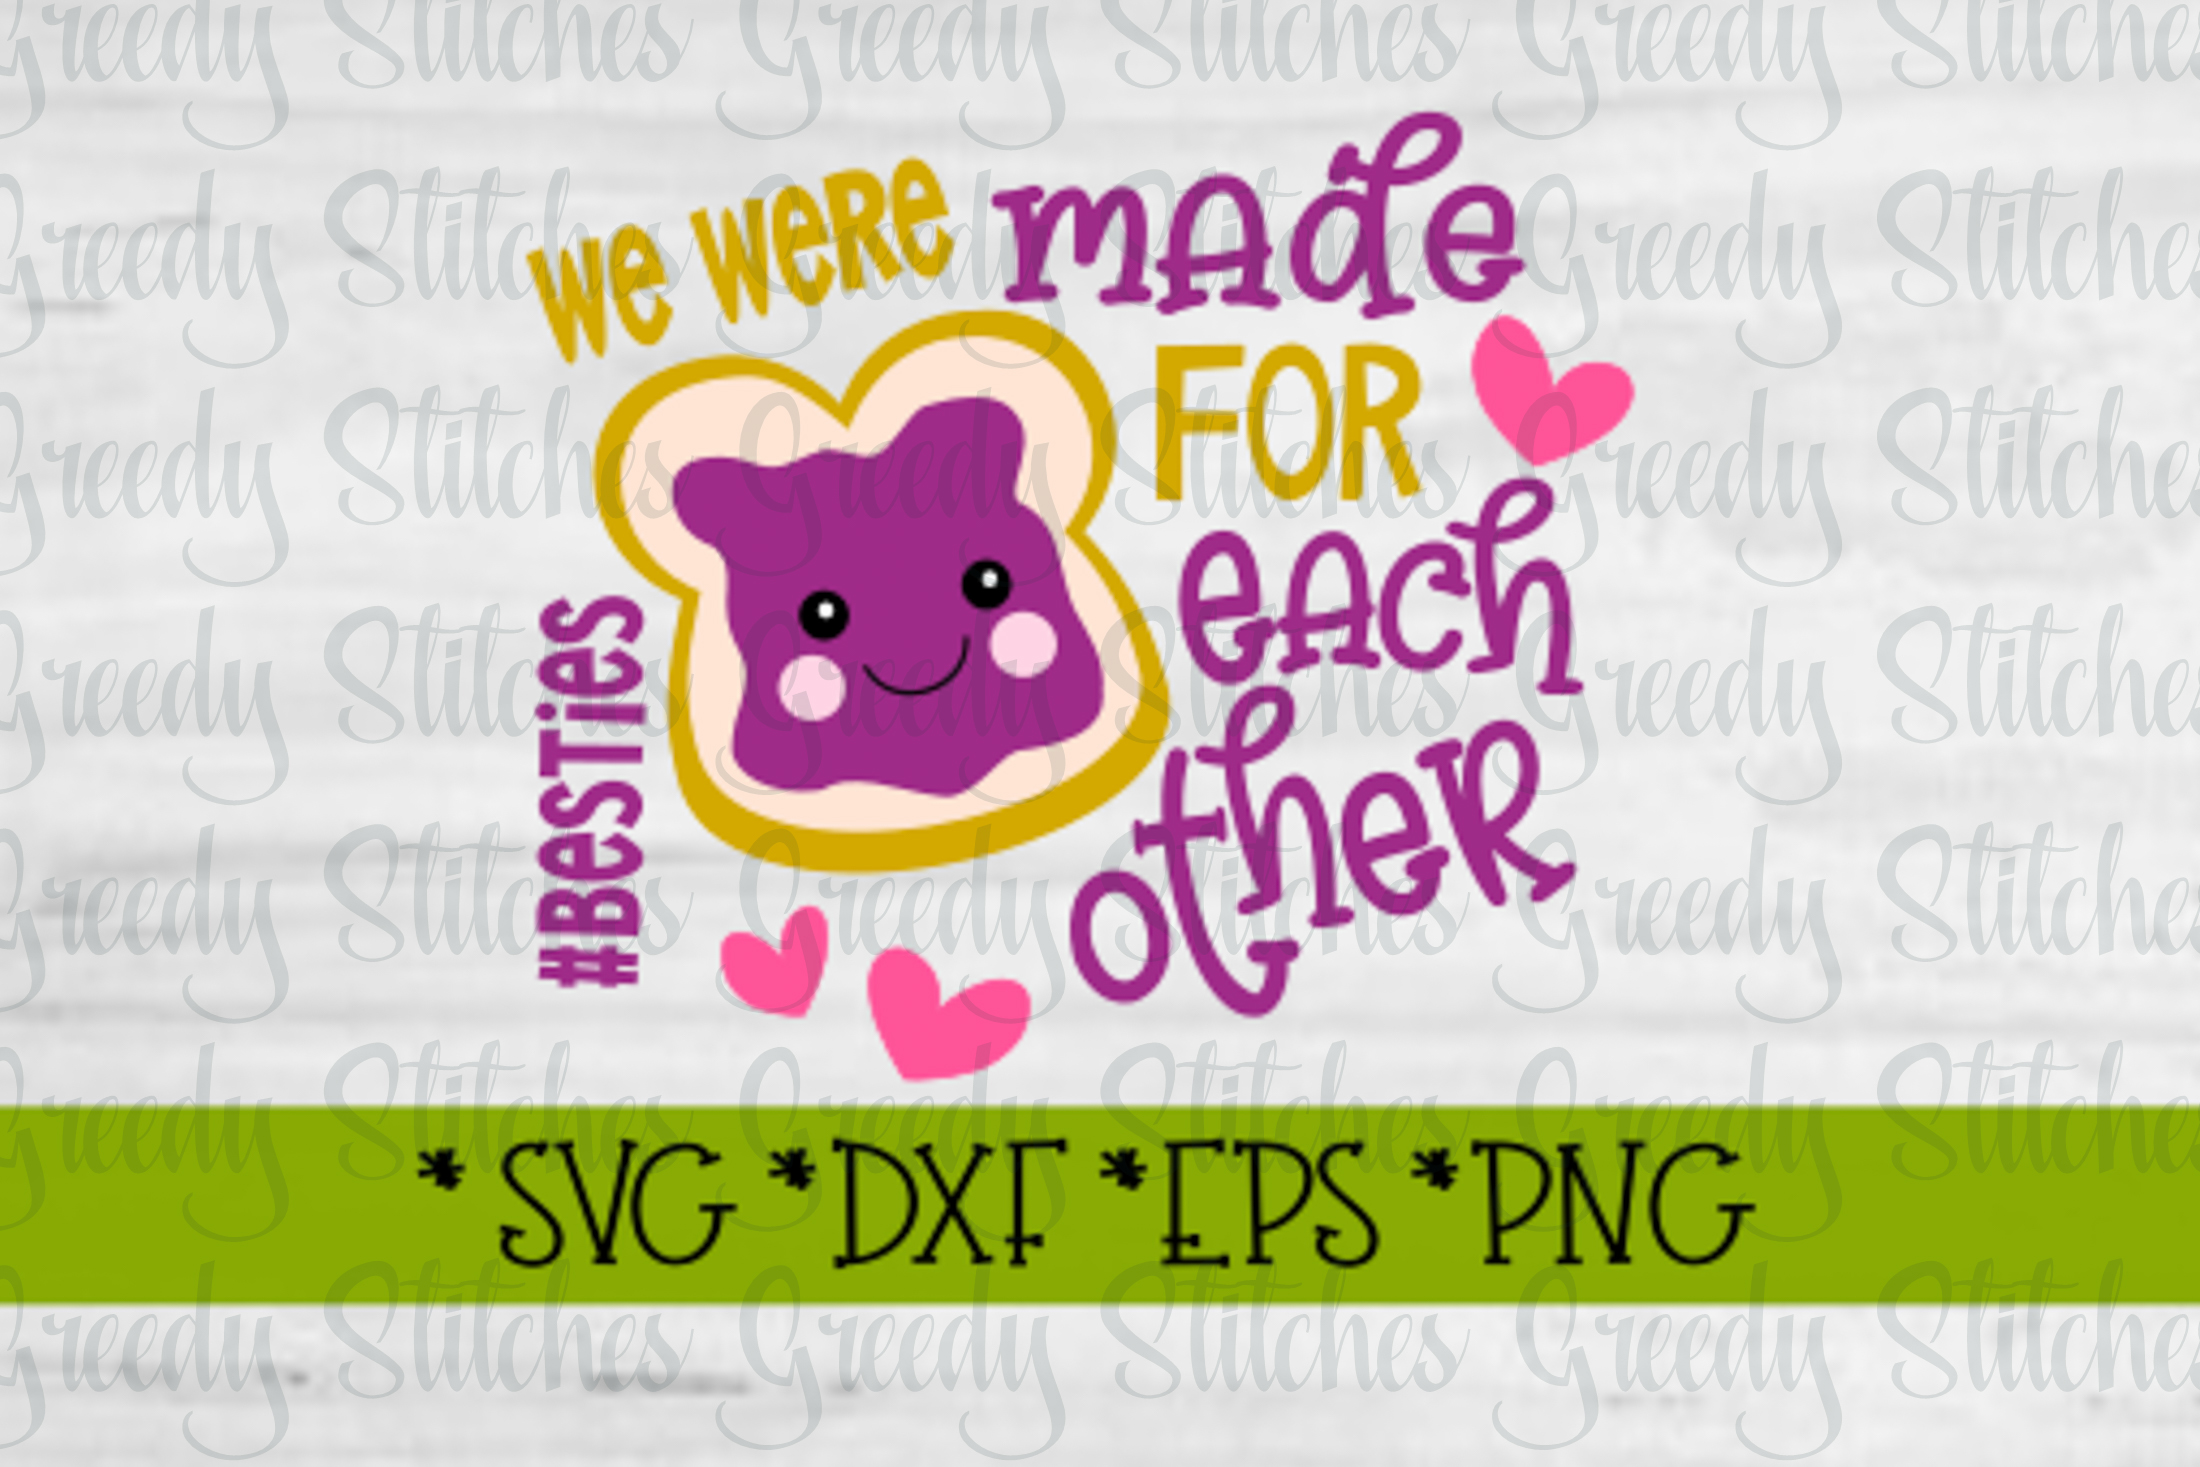 Peanut Butter & Jelly SVG DXF EPS PNG | Best Friends SVG DXF example image 18